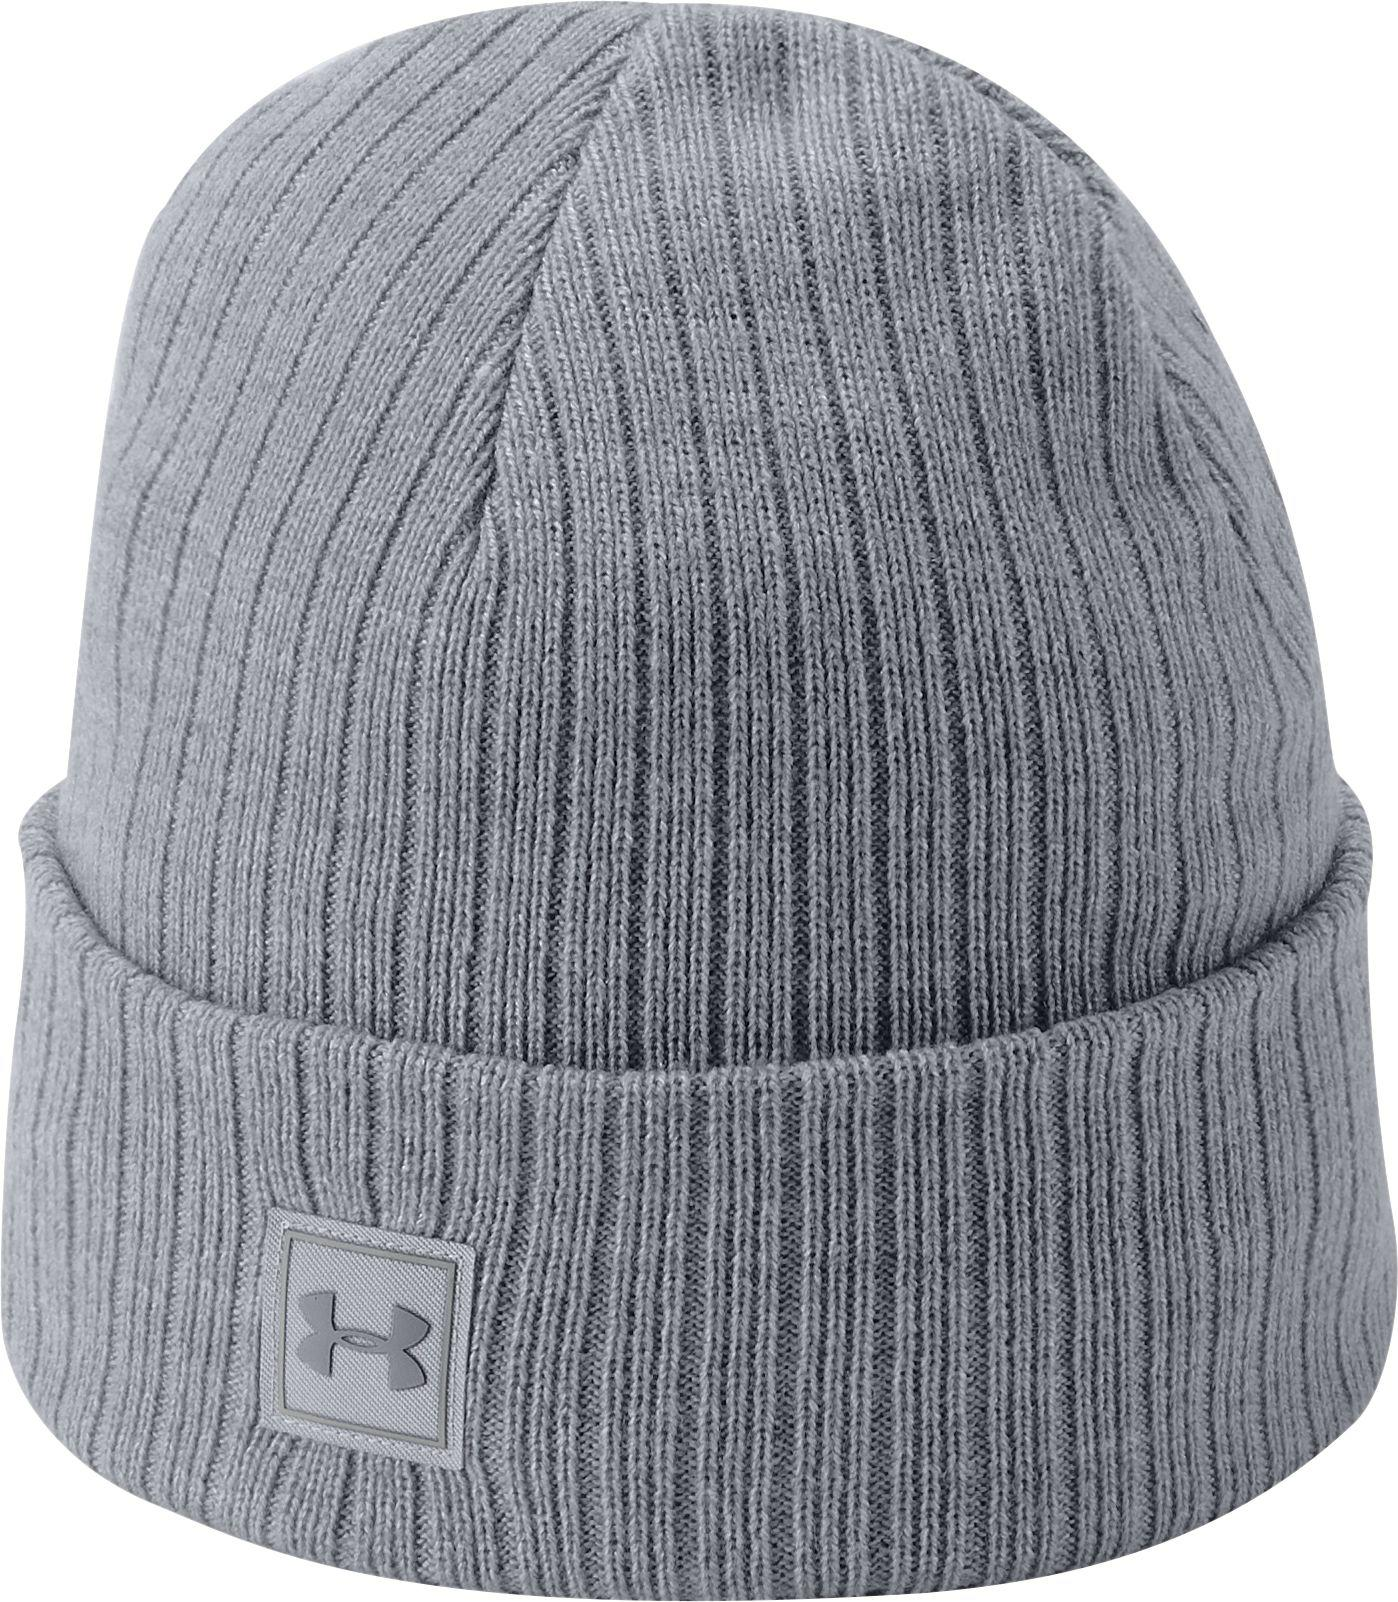 Lyst - Under Armour Truckstop 2.0 Beanie in Gray for Men c37b3a0fe764